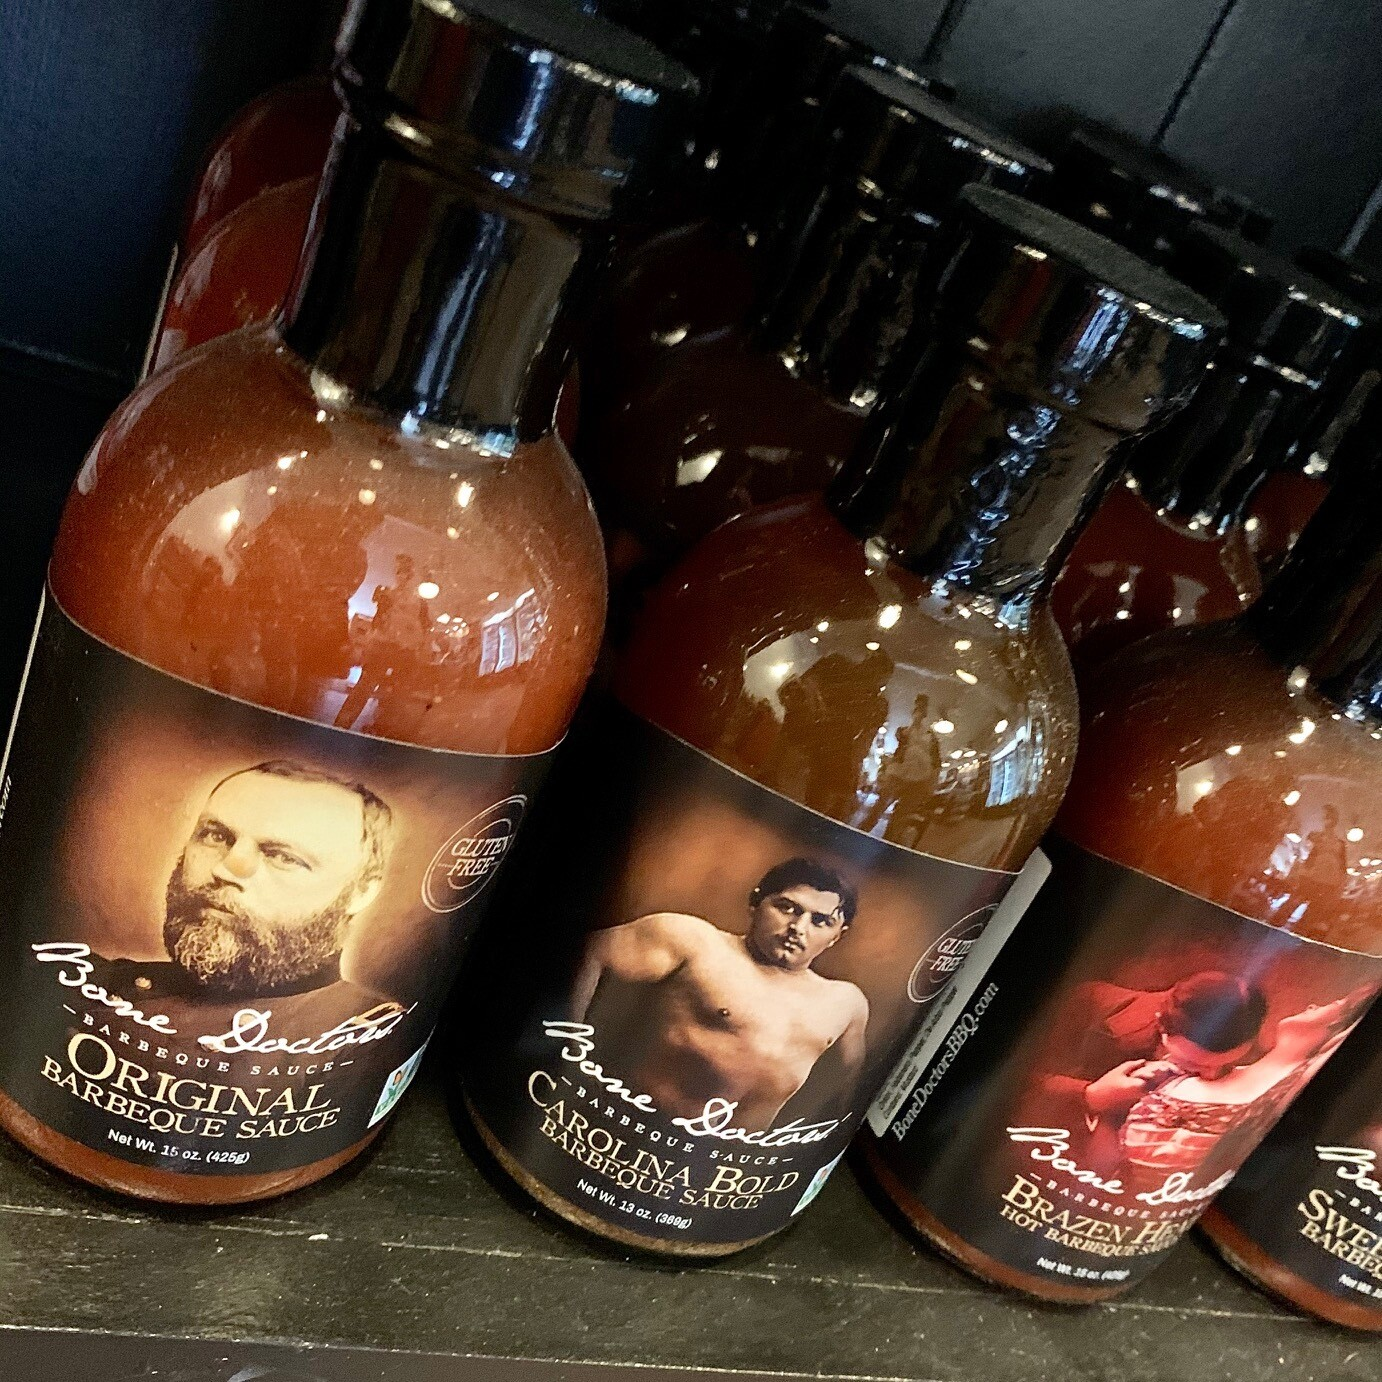 Bone Doctors barbecue sauces